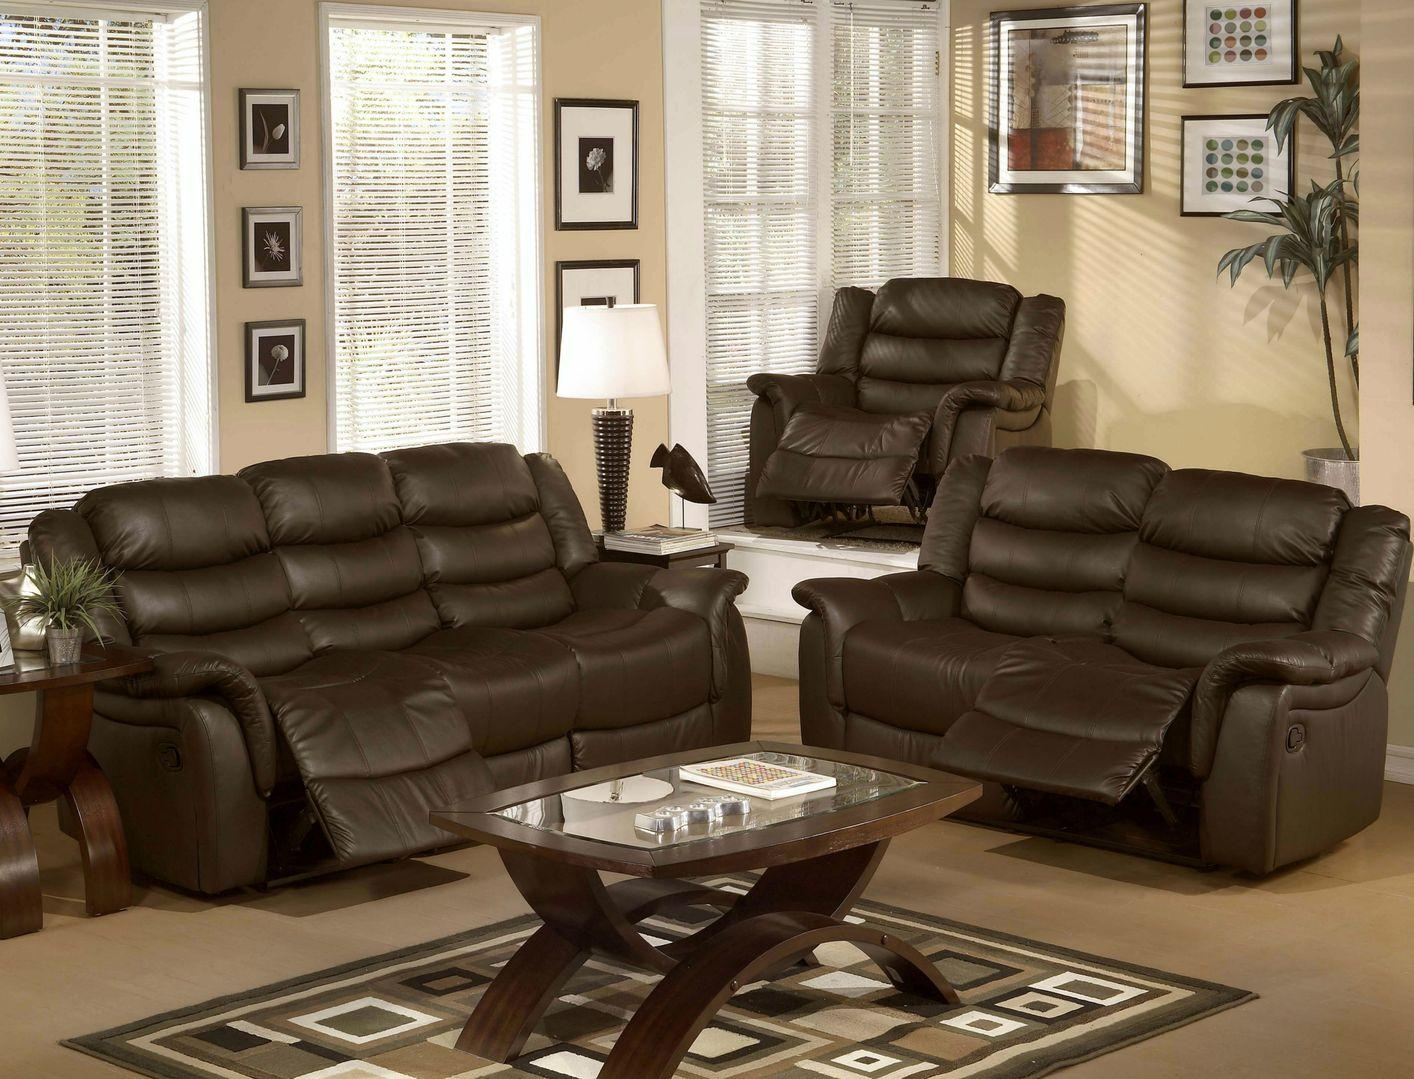 Some Types Sofa And Chair Set — Home Ideas Collection Within Sofa And Chair Set (View 19 of 20)